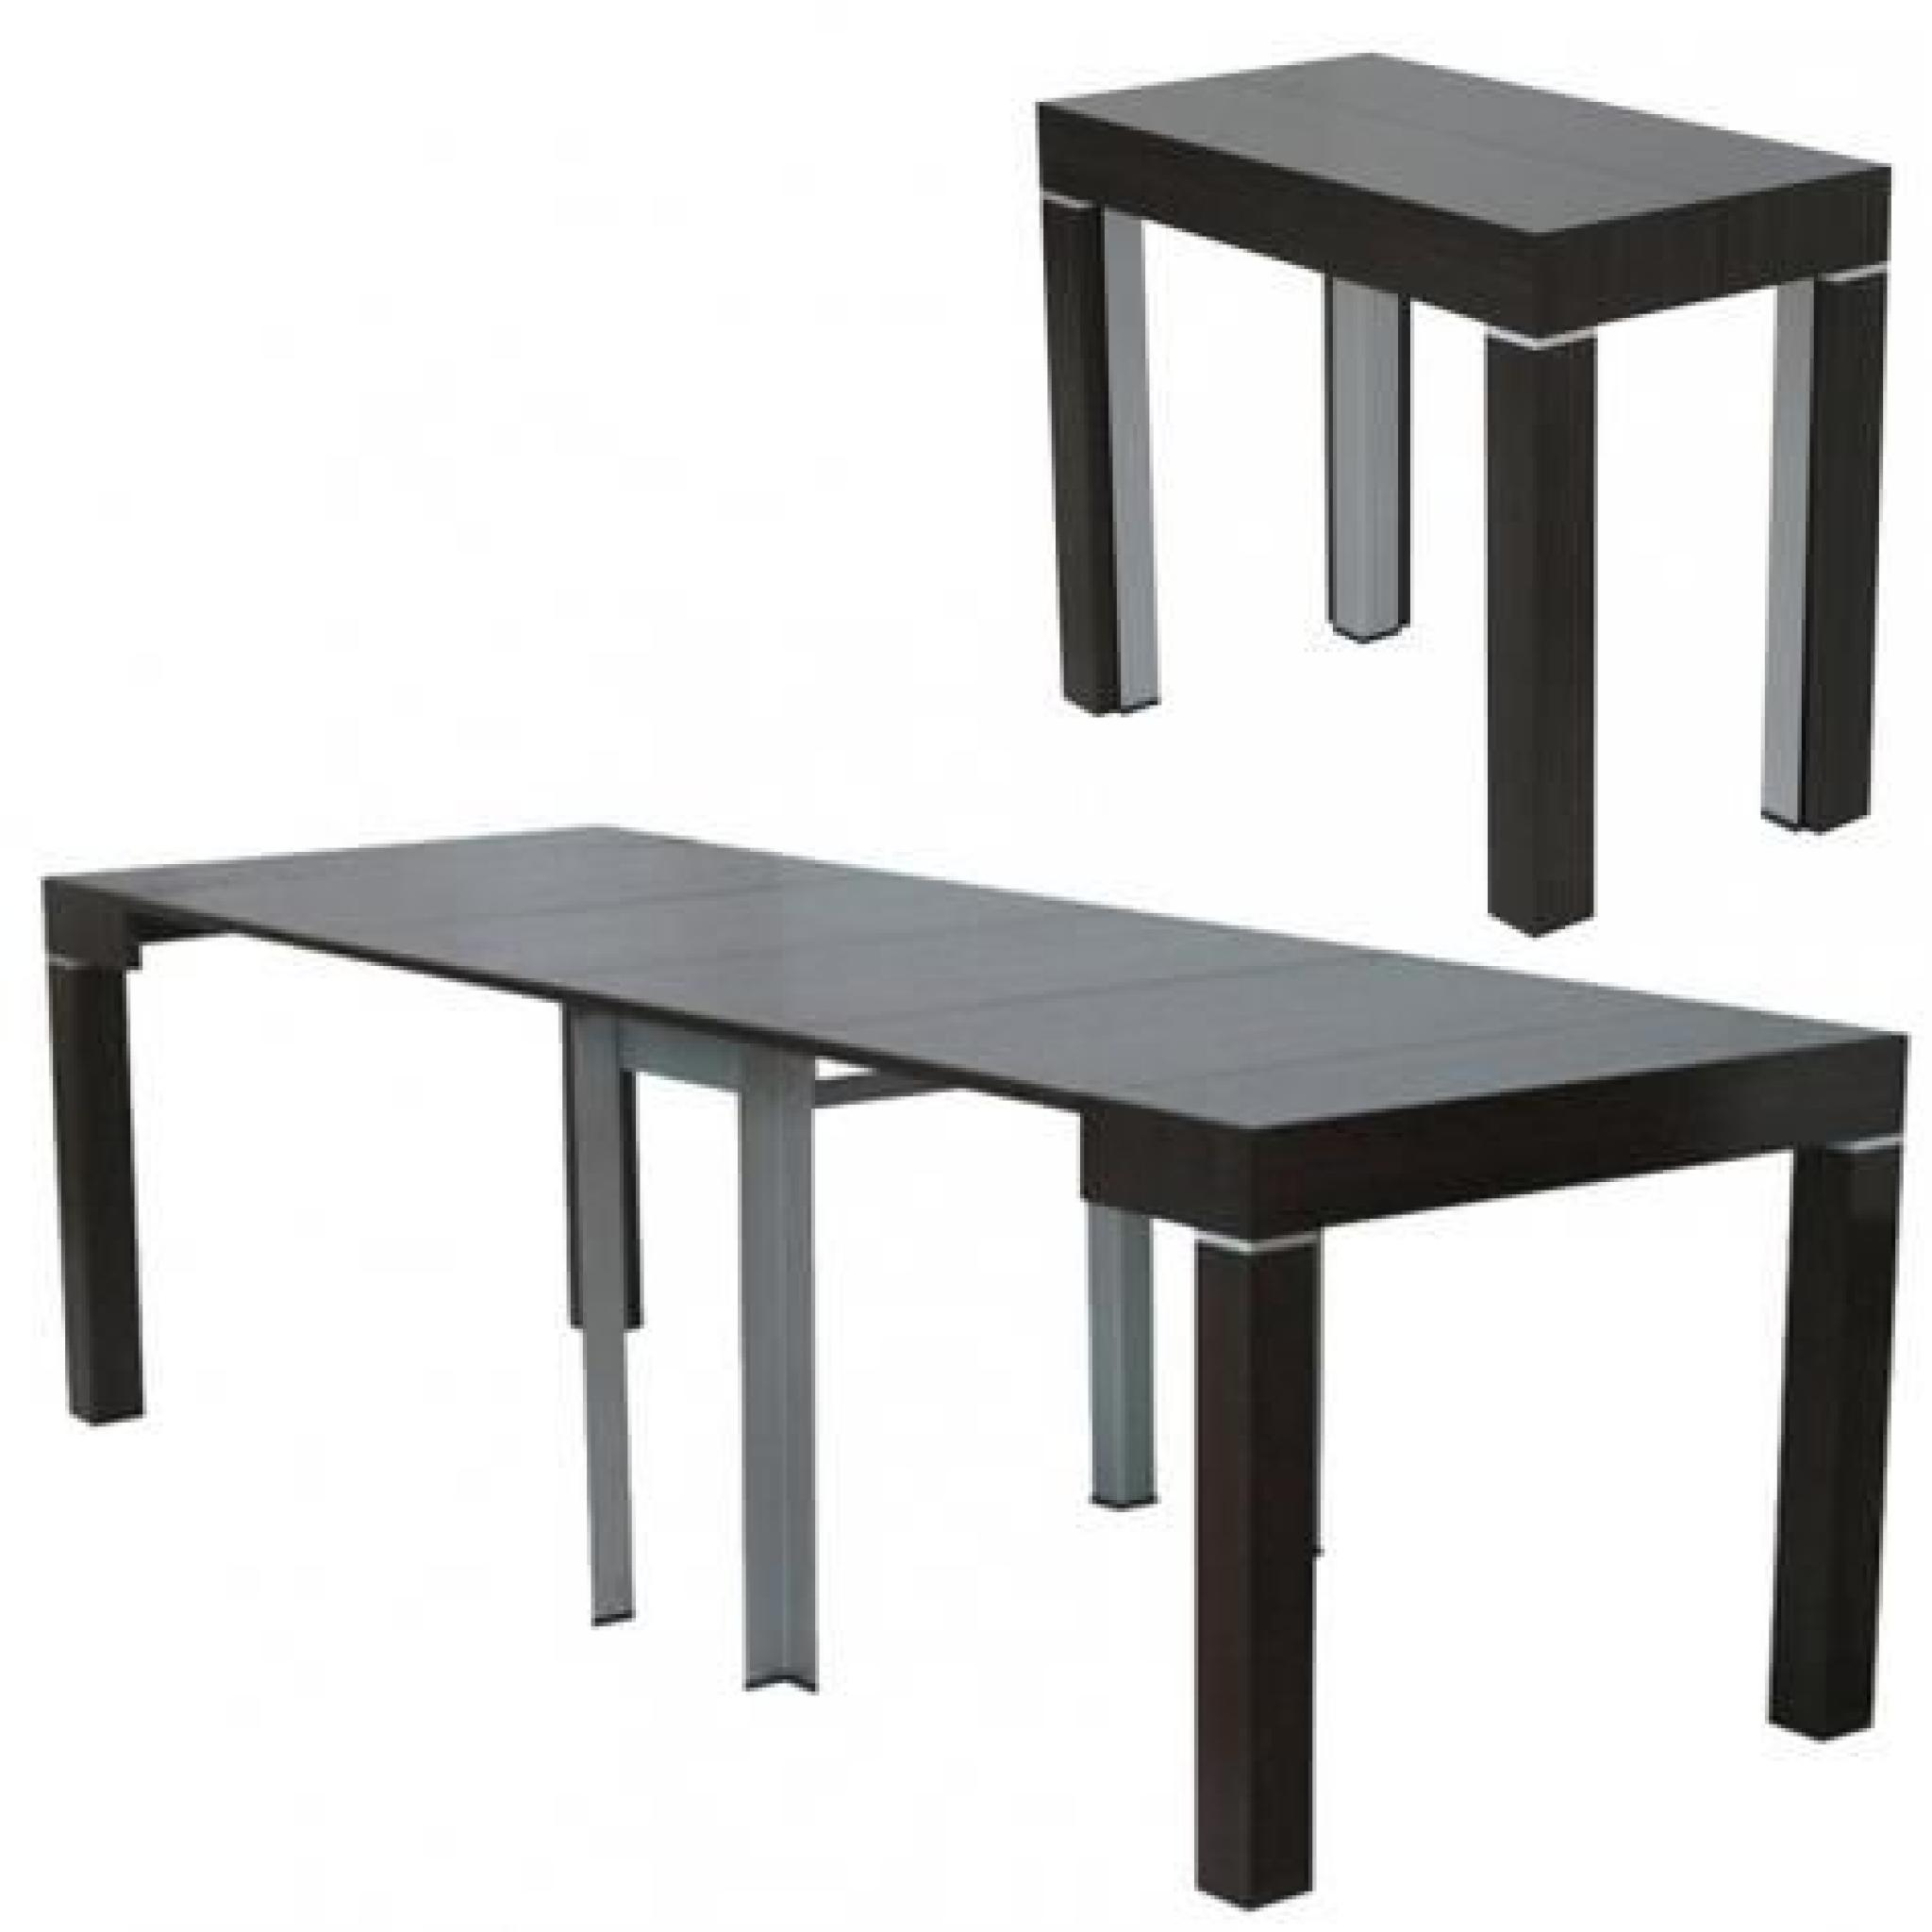 Table console extensible wenge avec 4 rallonges alesia for Table de salle a manger wenge